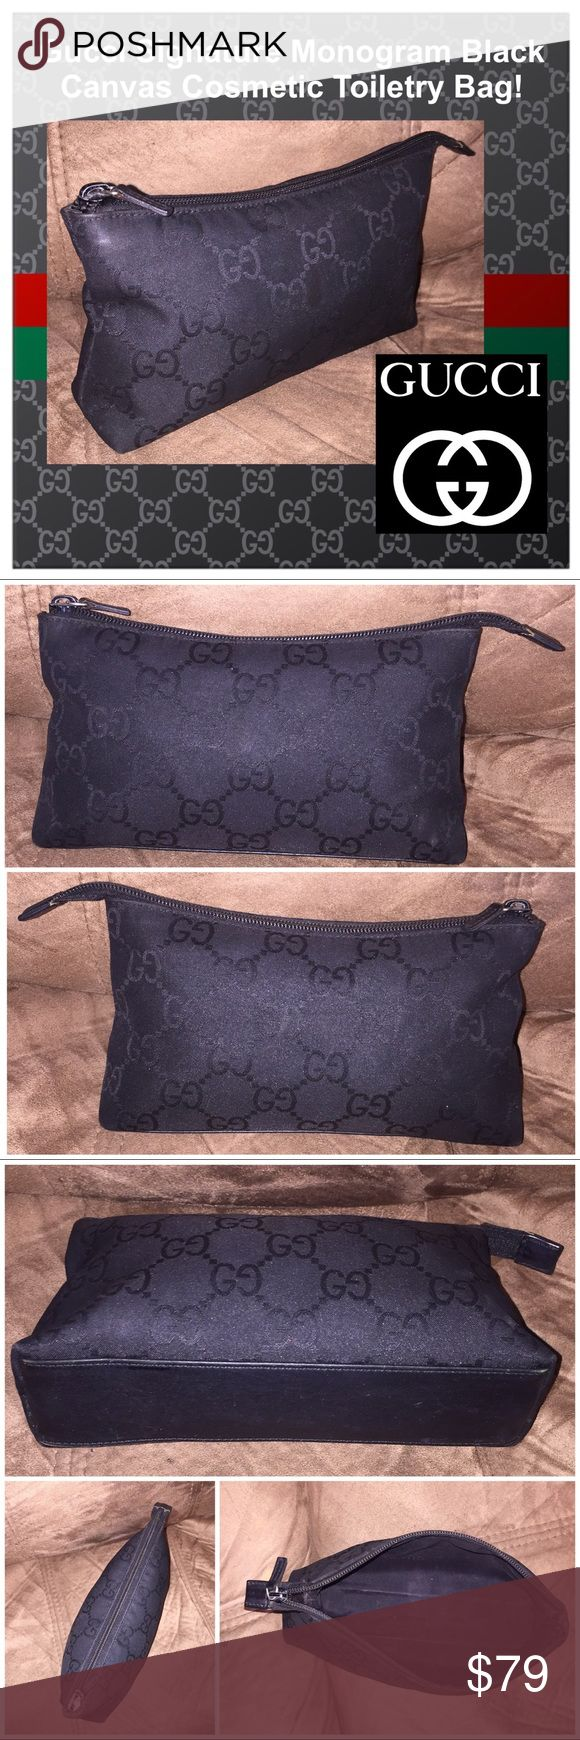 """Gucci Signature Monogram Cosmetic Toiletry Bag! Gucci Signature Monogram Black Canvas Cosmetic Toiletry Bag! 100% authentic, Gucci Monogram design, black canvas, leather trim, travel / cosmetic / toiletry bag, top zipper closure, """"GUCCI"""" pull. """"GUCCI made in Italy"""" leather an with serial no. on inside. Measures 8 1/2"""" across x 5"""" high x 2"""" wide. Minor interior marks & light exterior wear. No rips, tears or damage. Good condition! Offers welcomed! Gucci Bags Cosmetic Bags & Cases"""